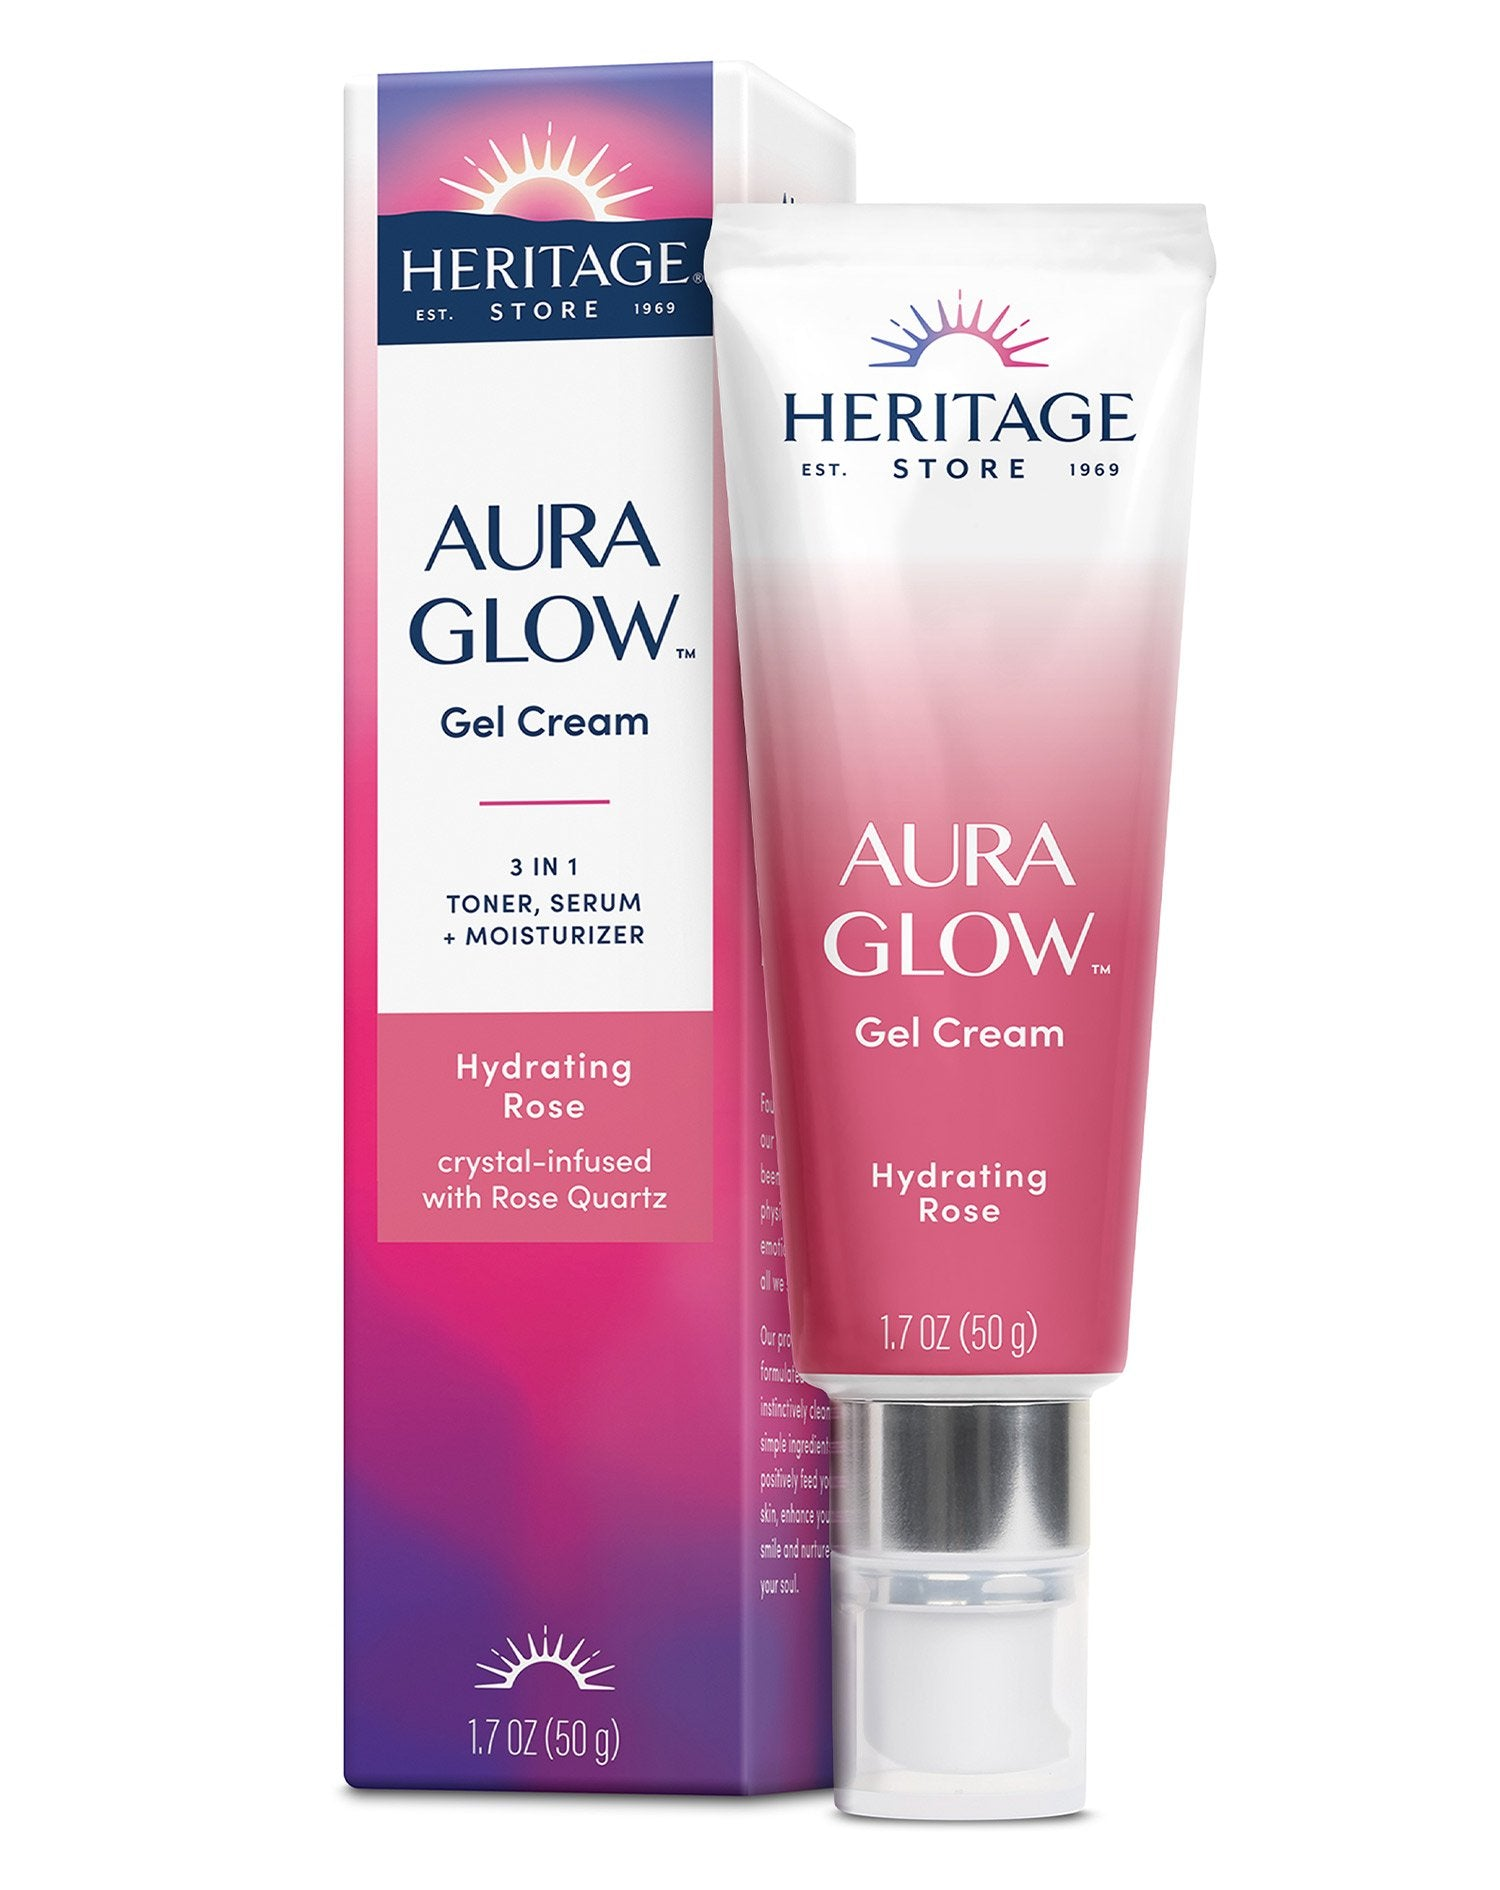 Aura Glow Gel Cream, Hydrating Rose